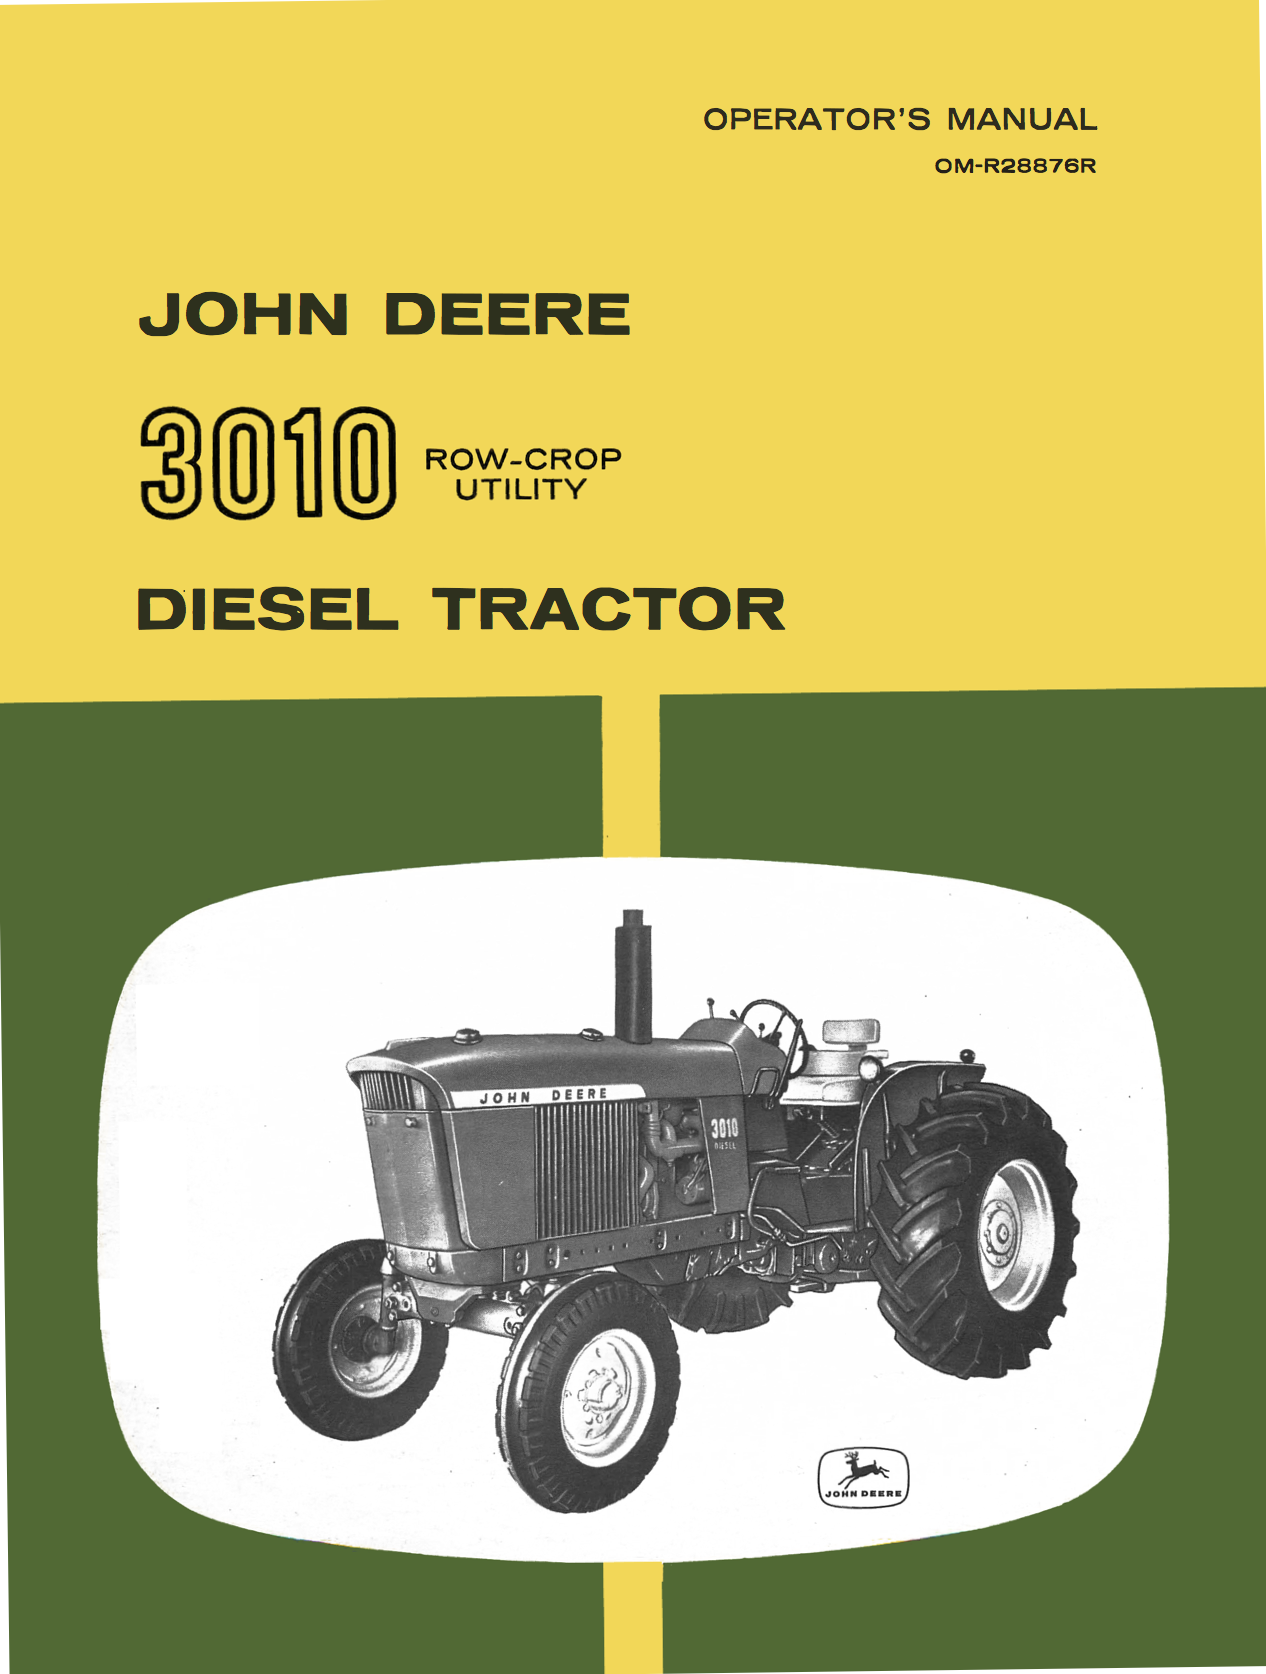 Kawasaki Mule 2510 Wiring Diagram Parts further 1912966 furthermore Viewit besides John Deere 750 Wiring Diagram also 440 John Deere Tractor Parts. on jd 1070 wiring diagram